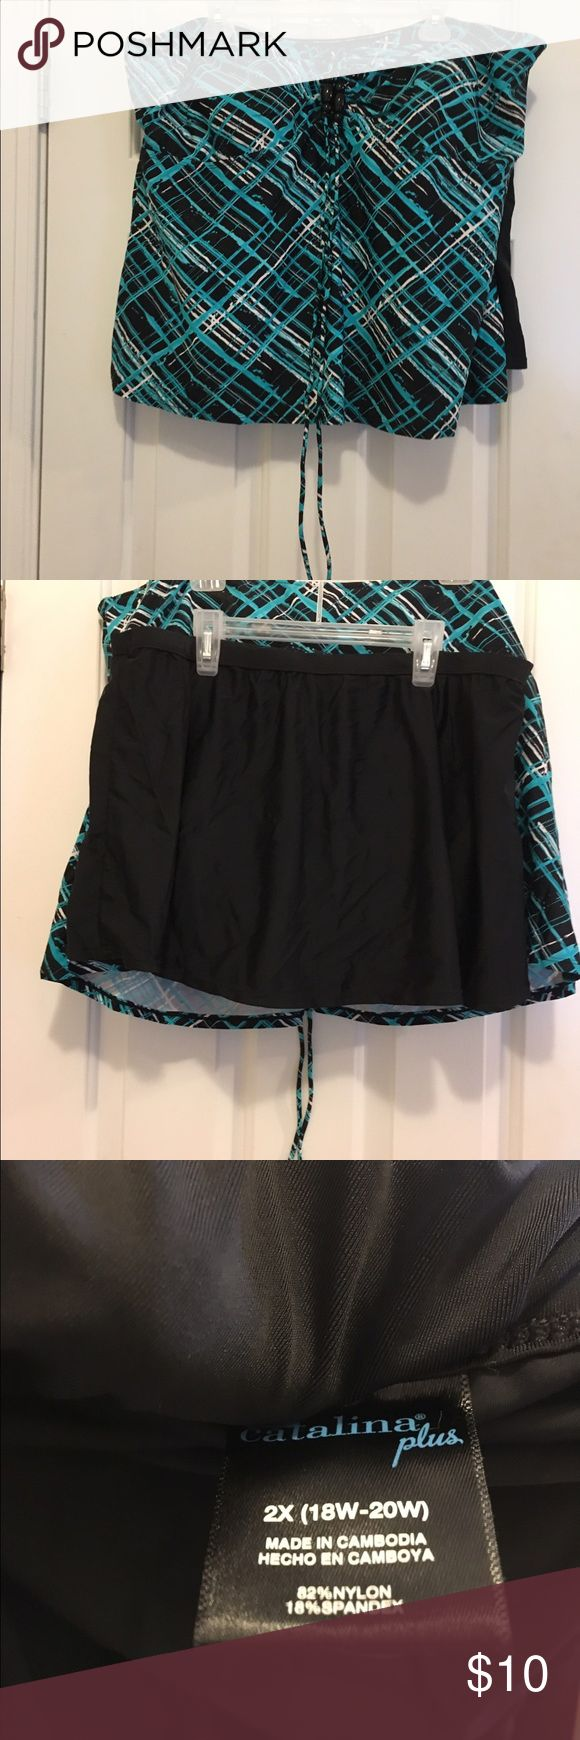 Addition Elle plus size swimsuit Addition Elle brand plus size 2 piece swimsuit, size 4X top and size 18/20 bottom. Excellent condition and gently used. Ties around the neck and has a very supportive bra built in. Addition Elle Swim